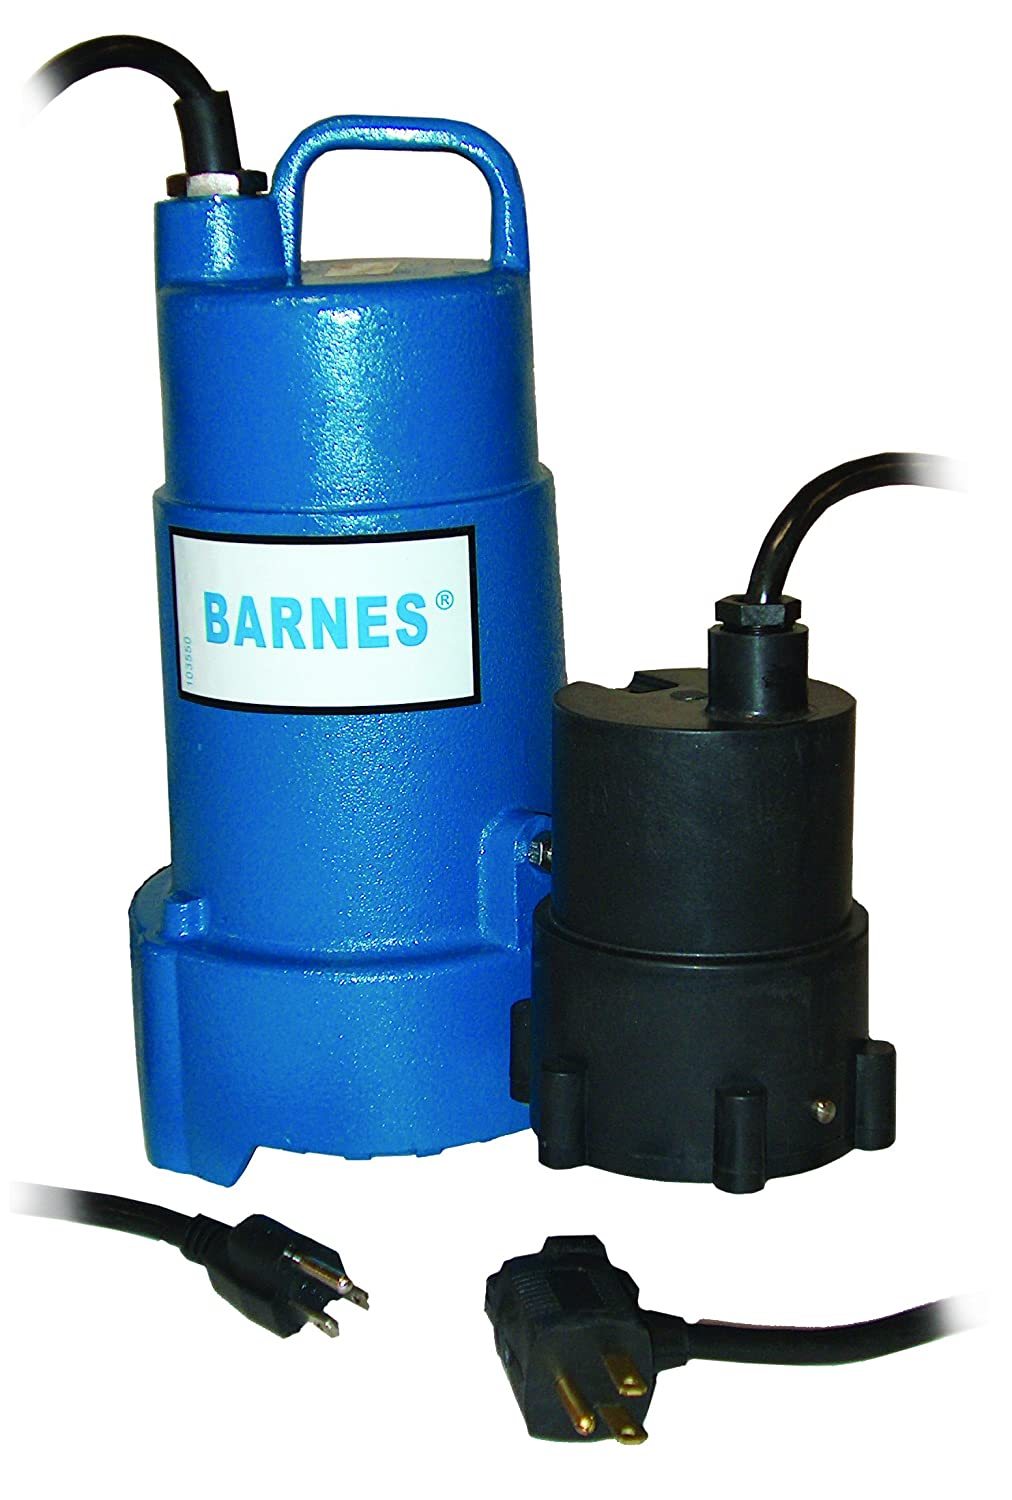 Barnes 112875 Model Sp50x Sump Pump 1 2 Hp 120v Hydraulic Wiring Diagram For Phase 3450 Rpm Npt Discharge Manual 20 Cord Industrial Scientific